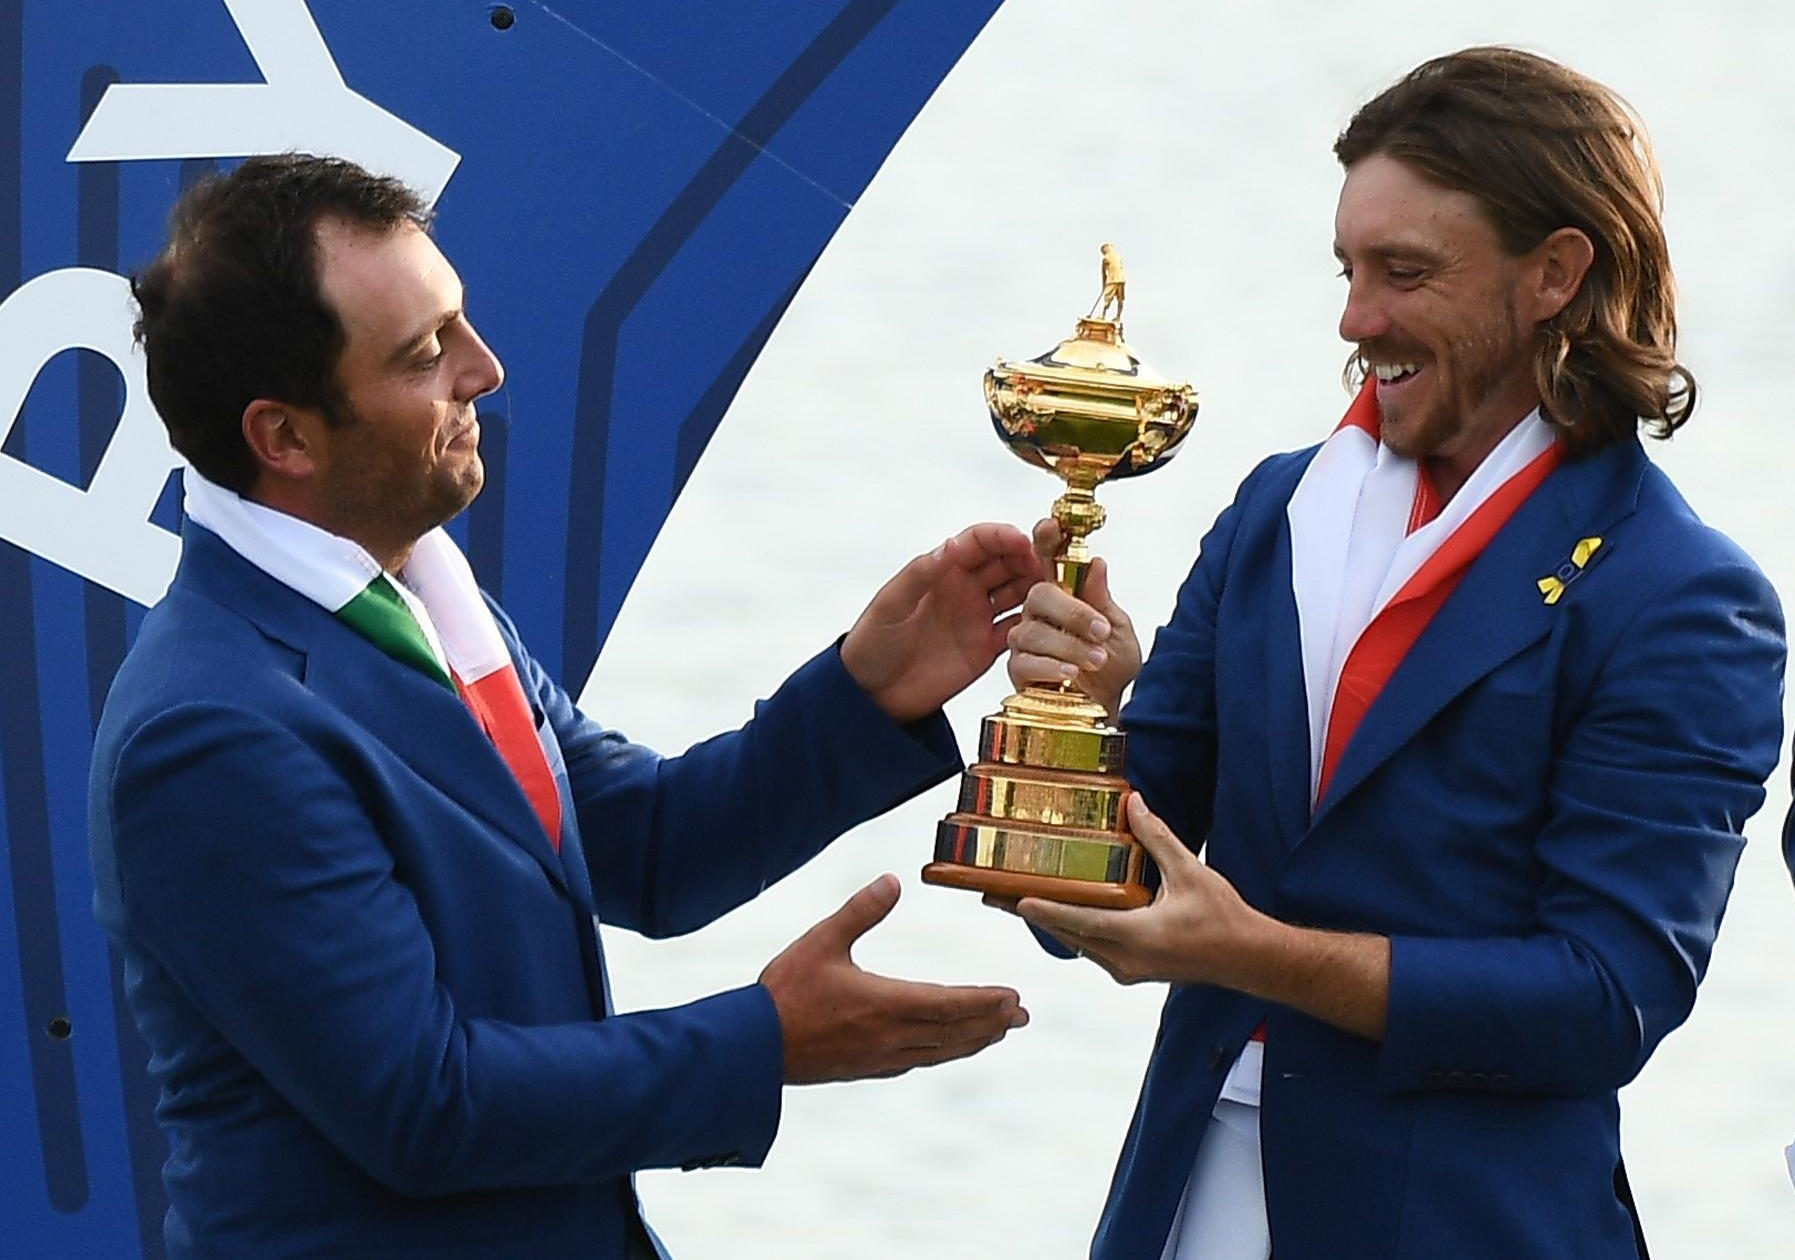 Englishman Tommy Fleetwood and Italian Francesco Molinari celebrate winning the Ryder Cup over the USA in September